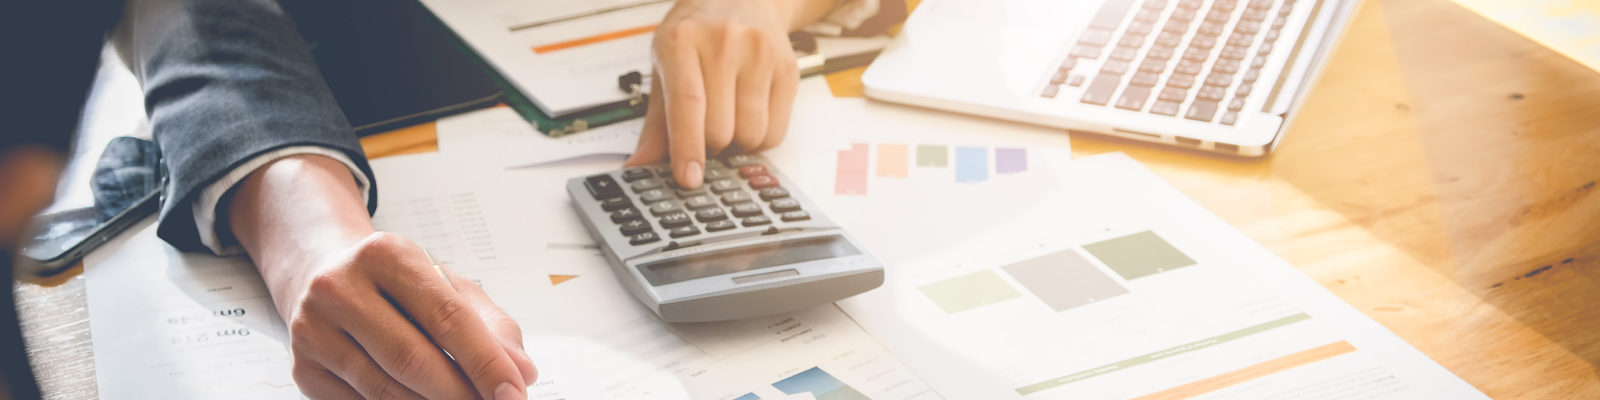 Person sitting at desk with a calculator looking at graphs.